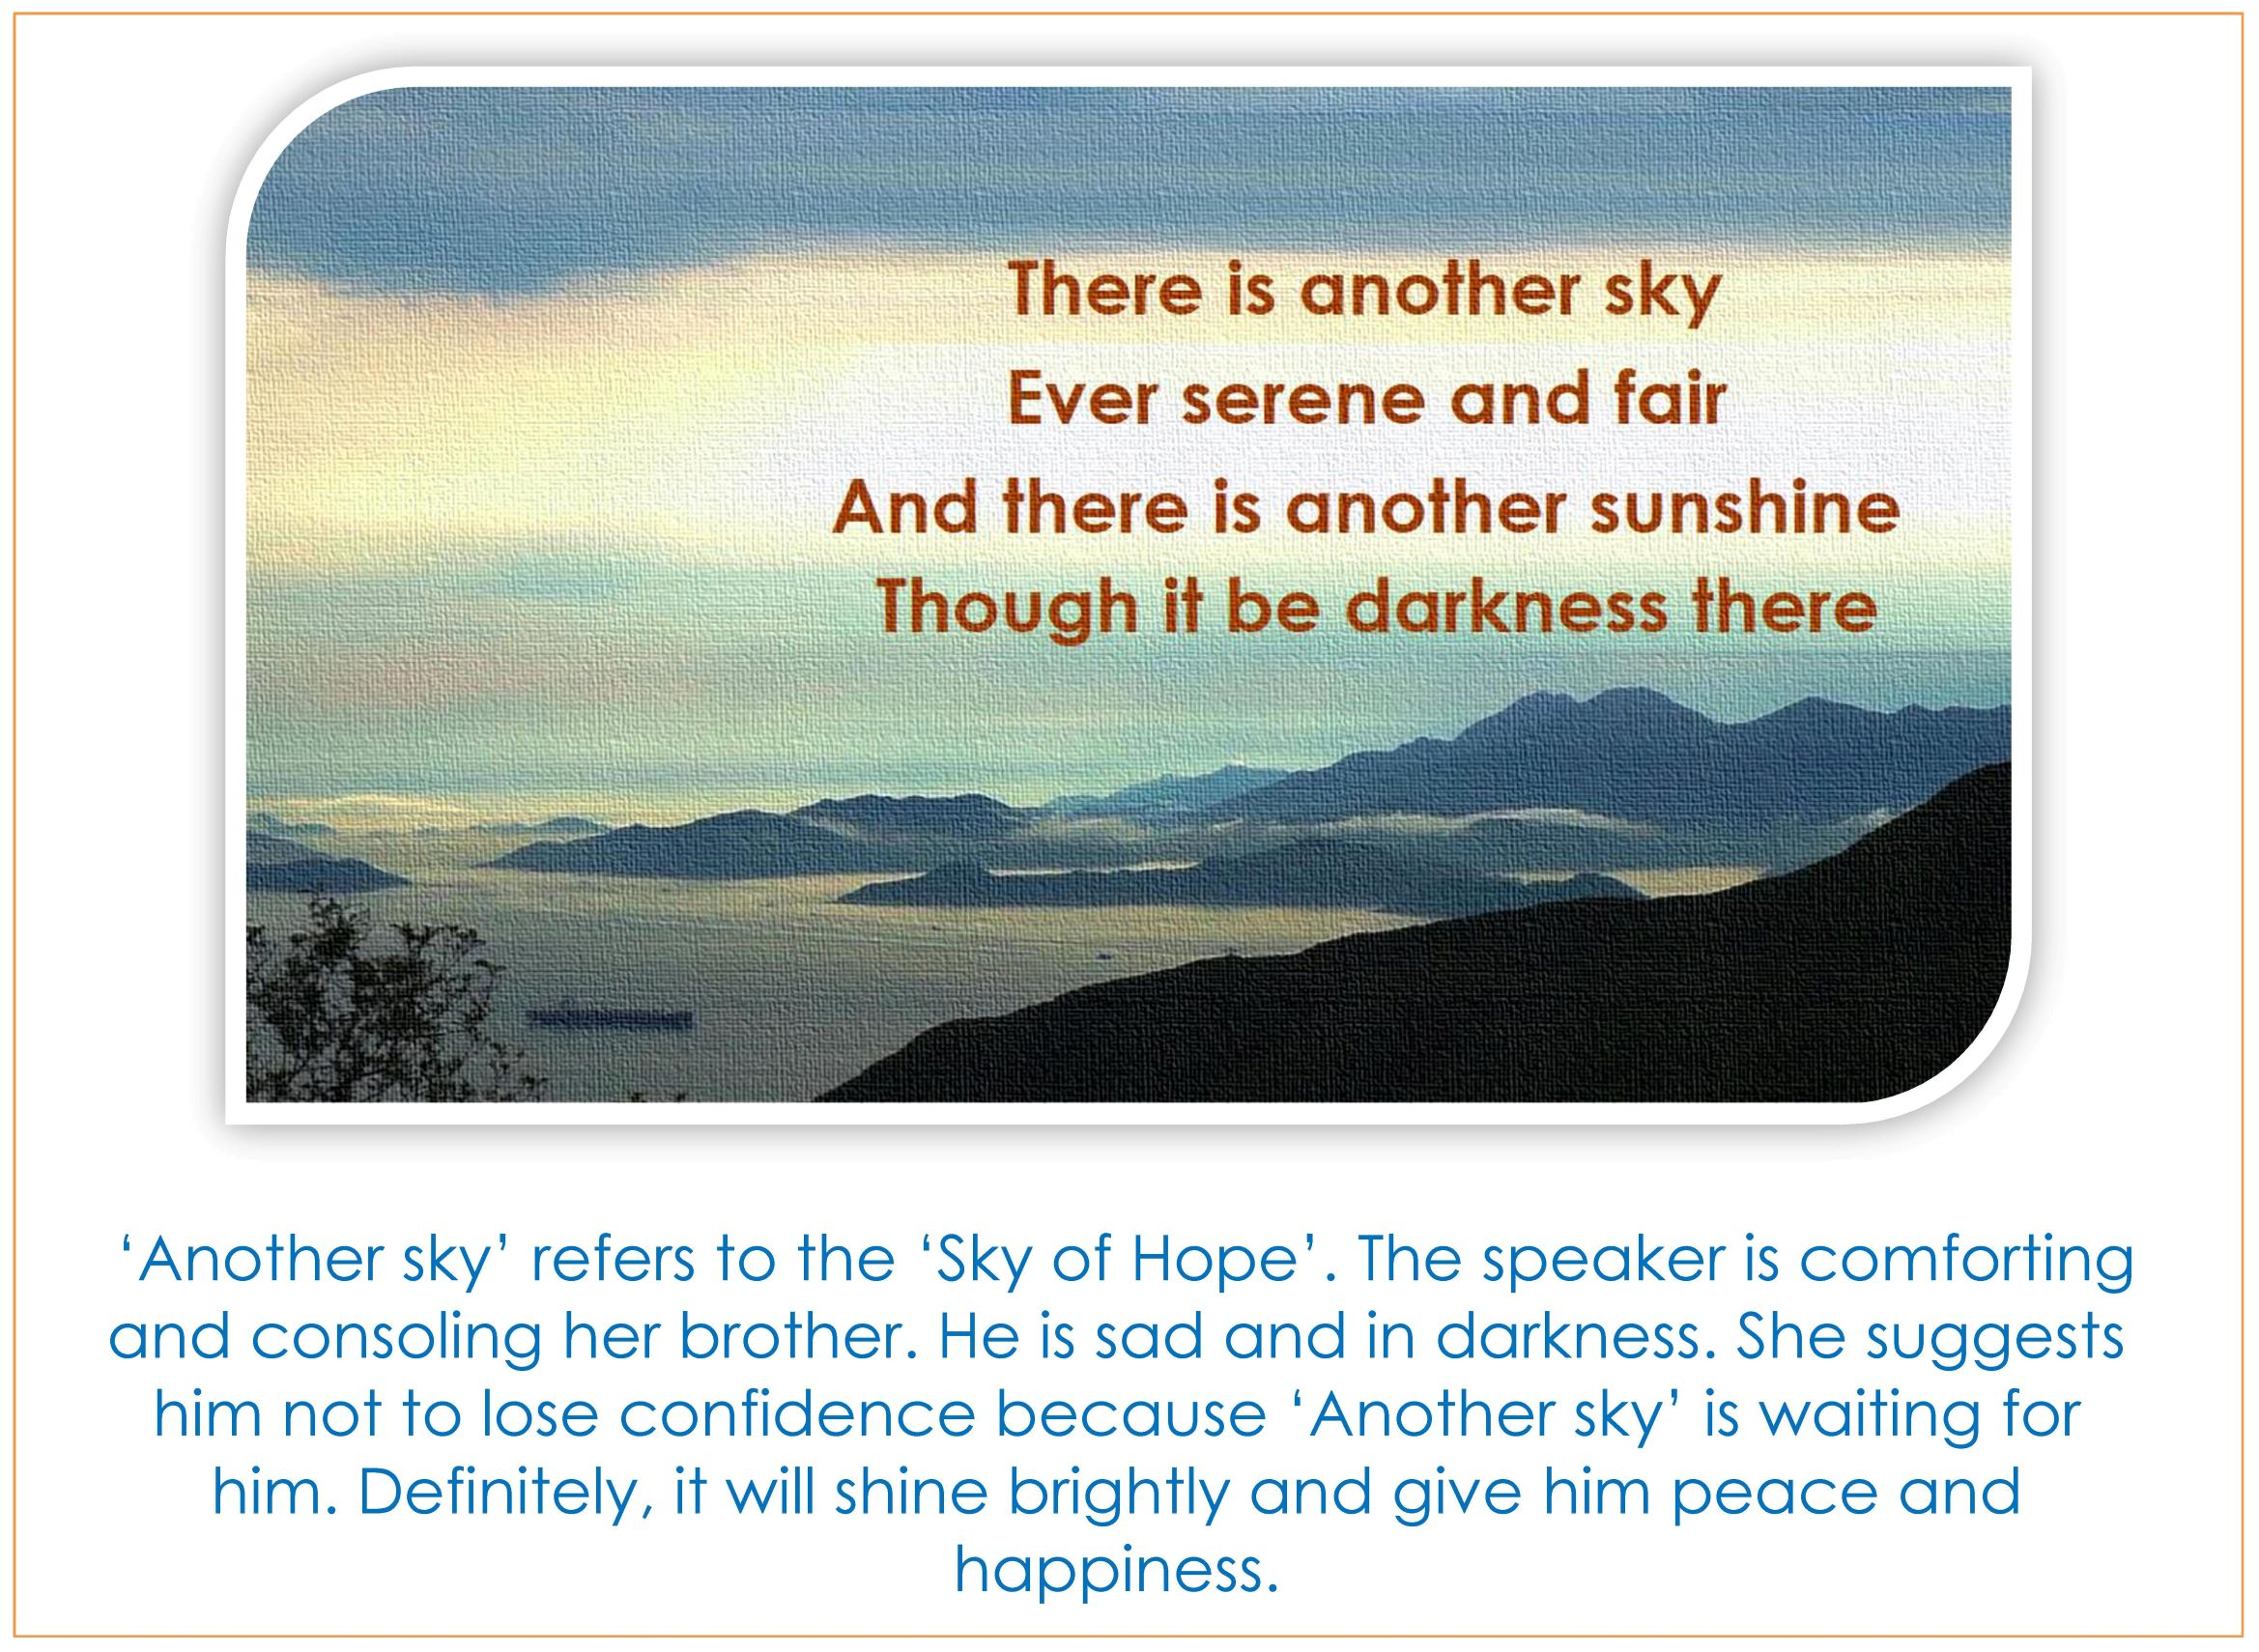 POEM_THERE_IS_ANOTHER_SKY_4_